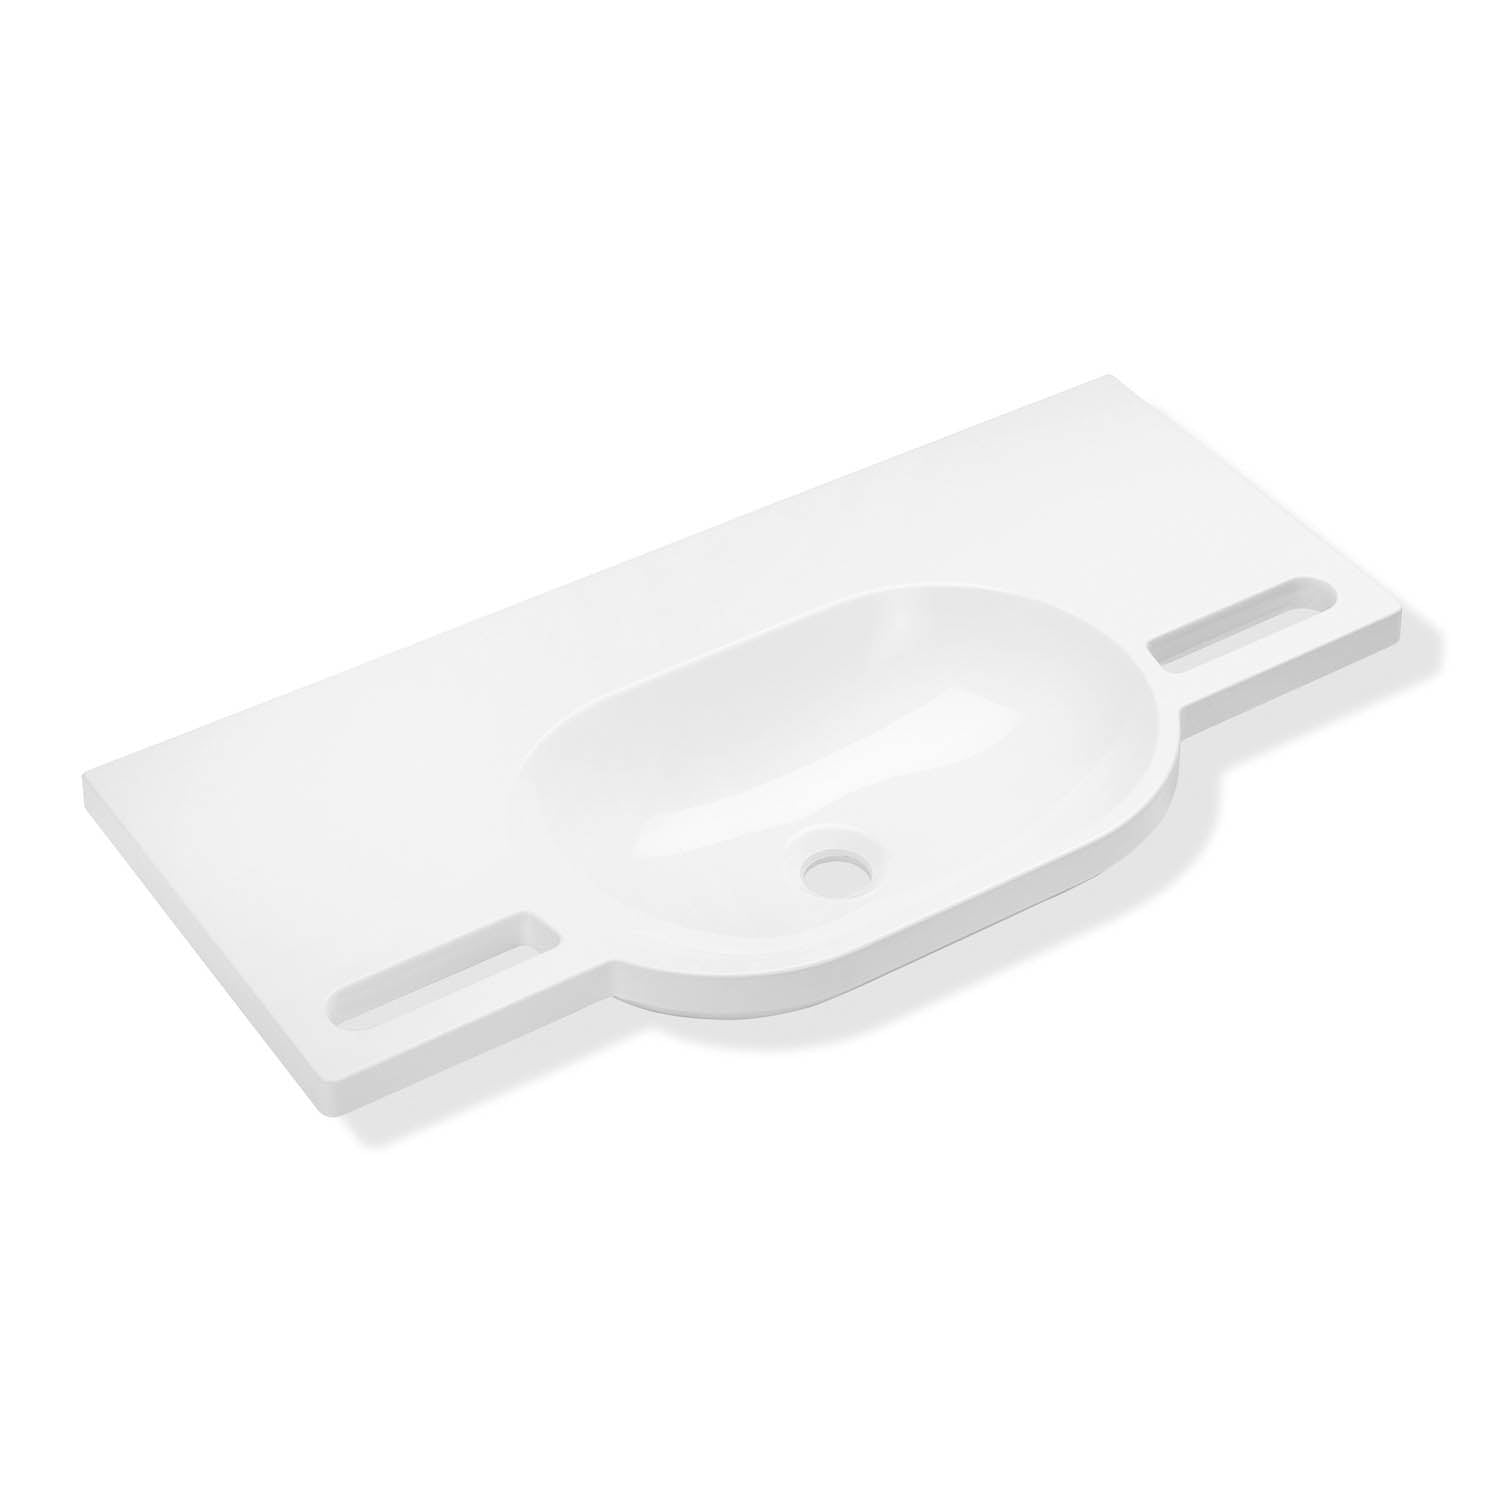 850mm SurfaceHold Wall Hung Long Oval Basin with no tap hole on a white background